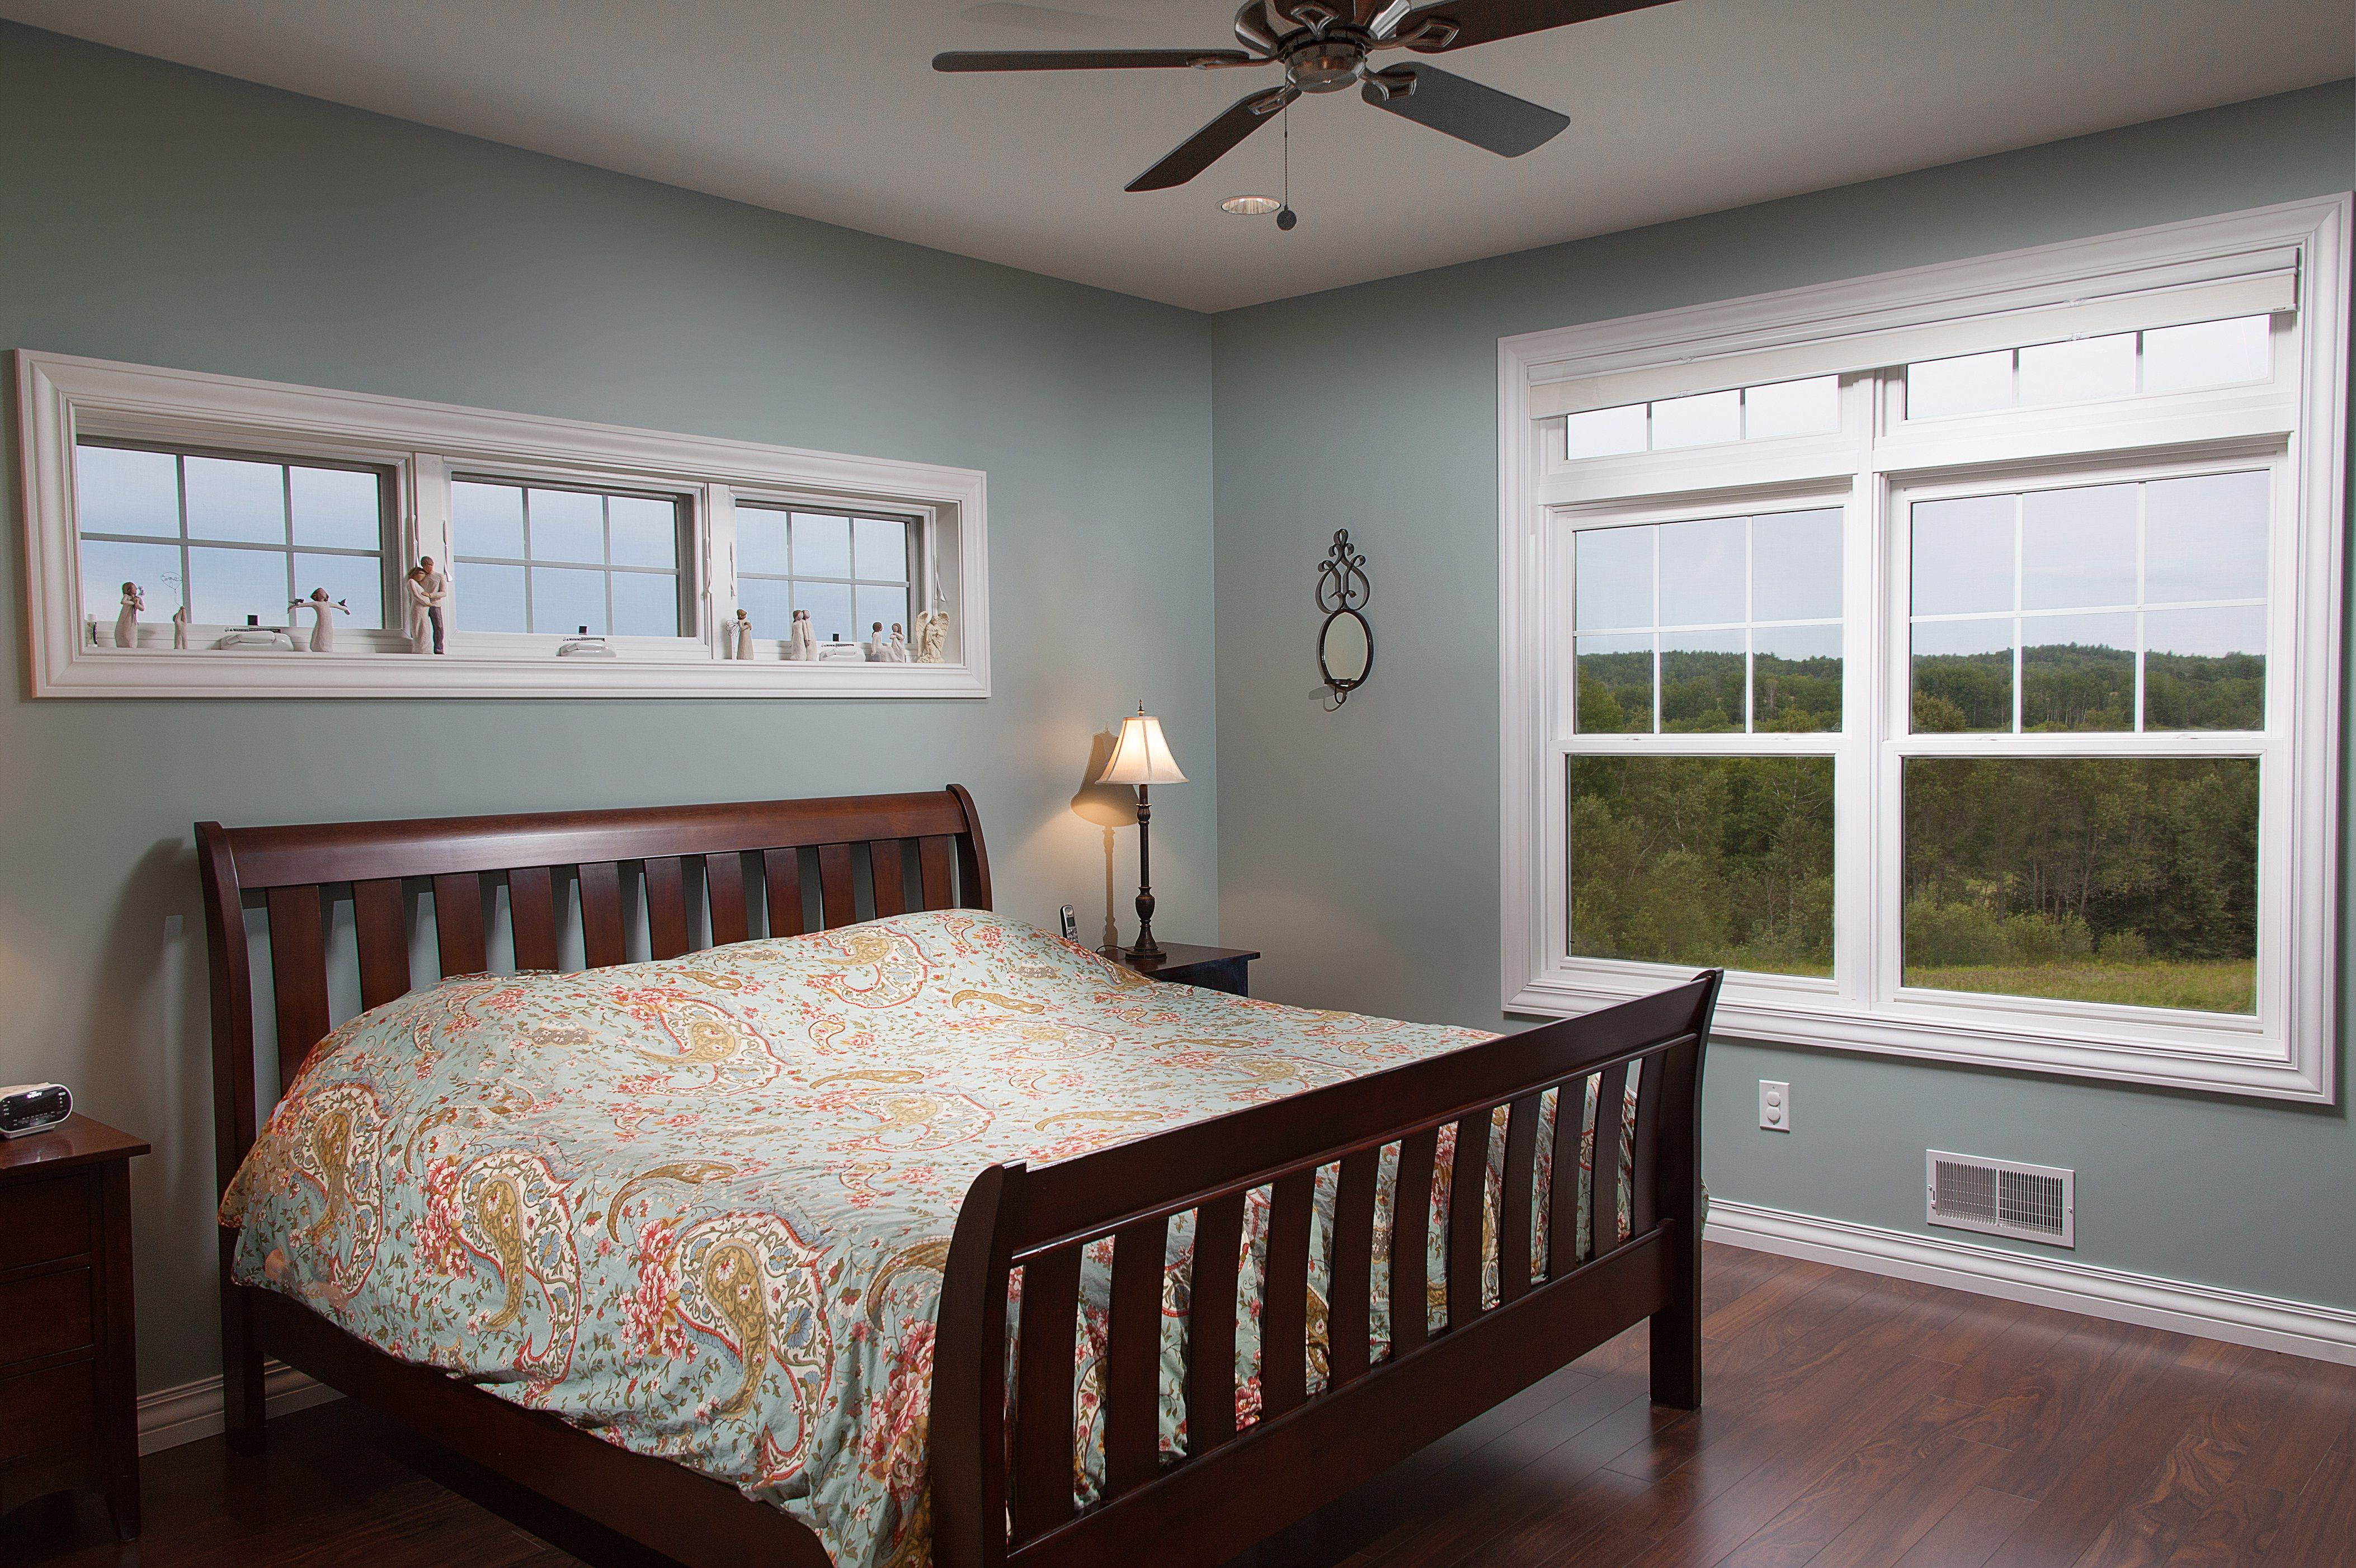 Awning windows bedroom - Bedroom 1 9 Tall Ceiling And An Awning Windows Above The